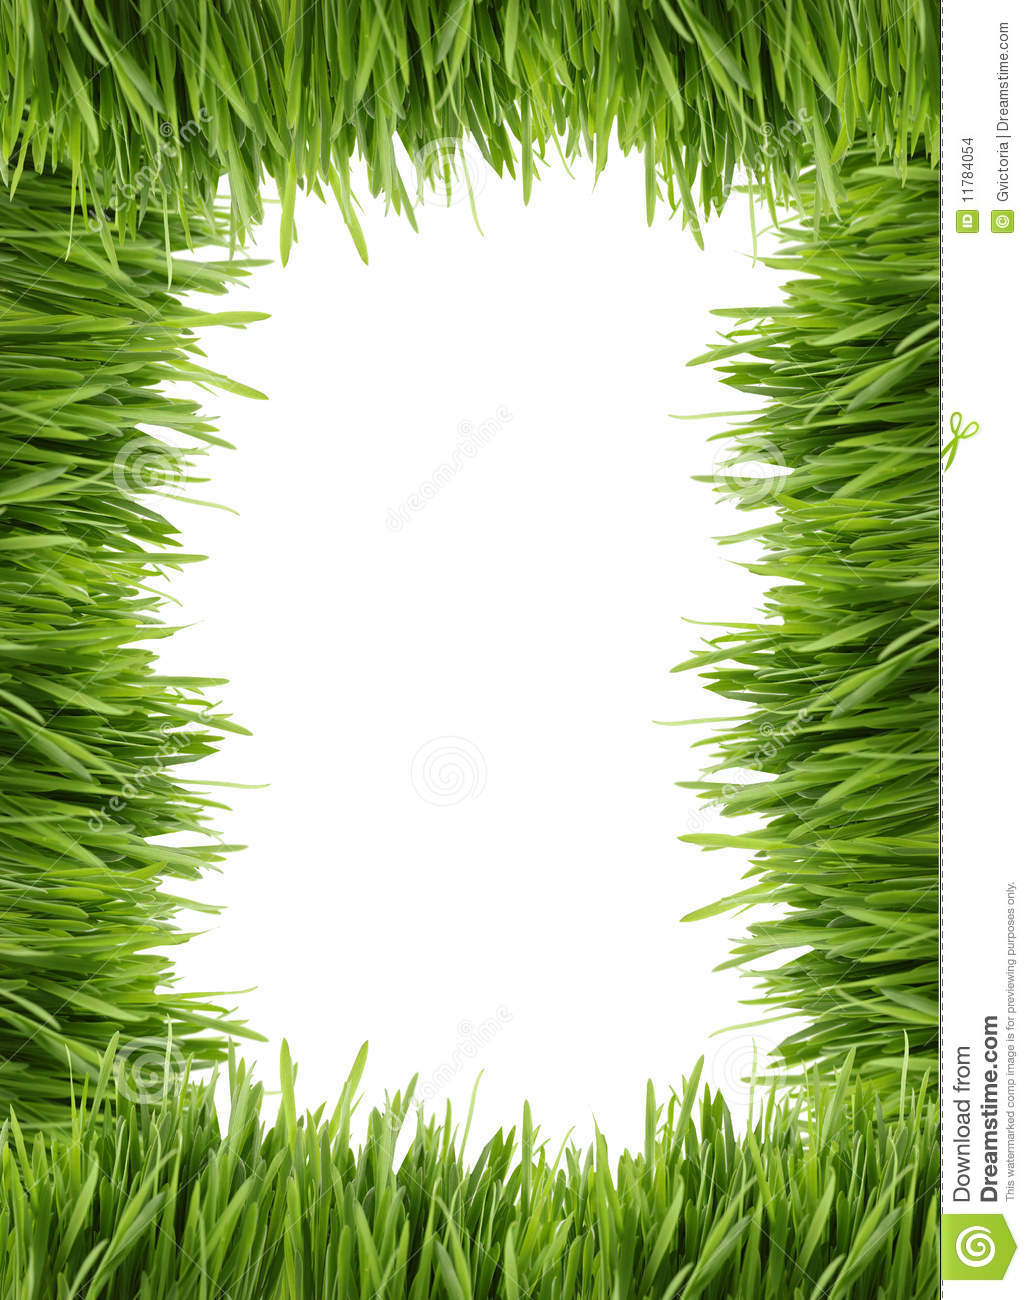 tall grass border or frame stock images image 11784054